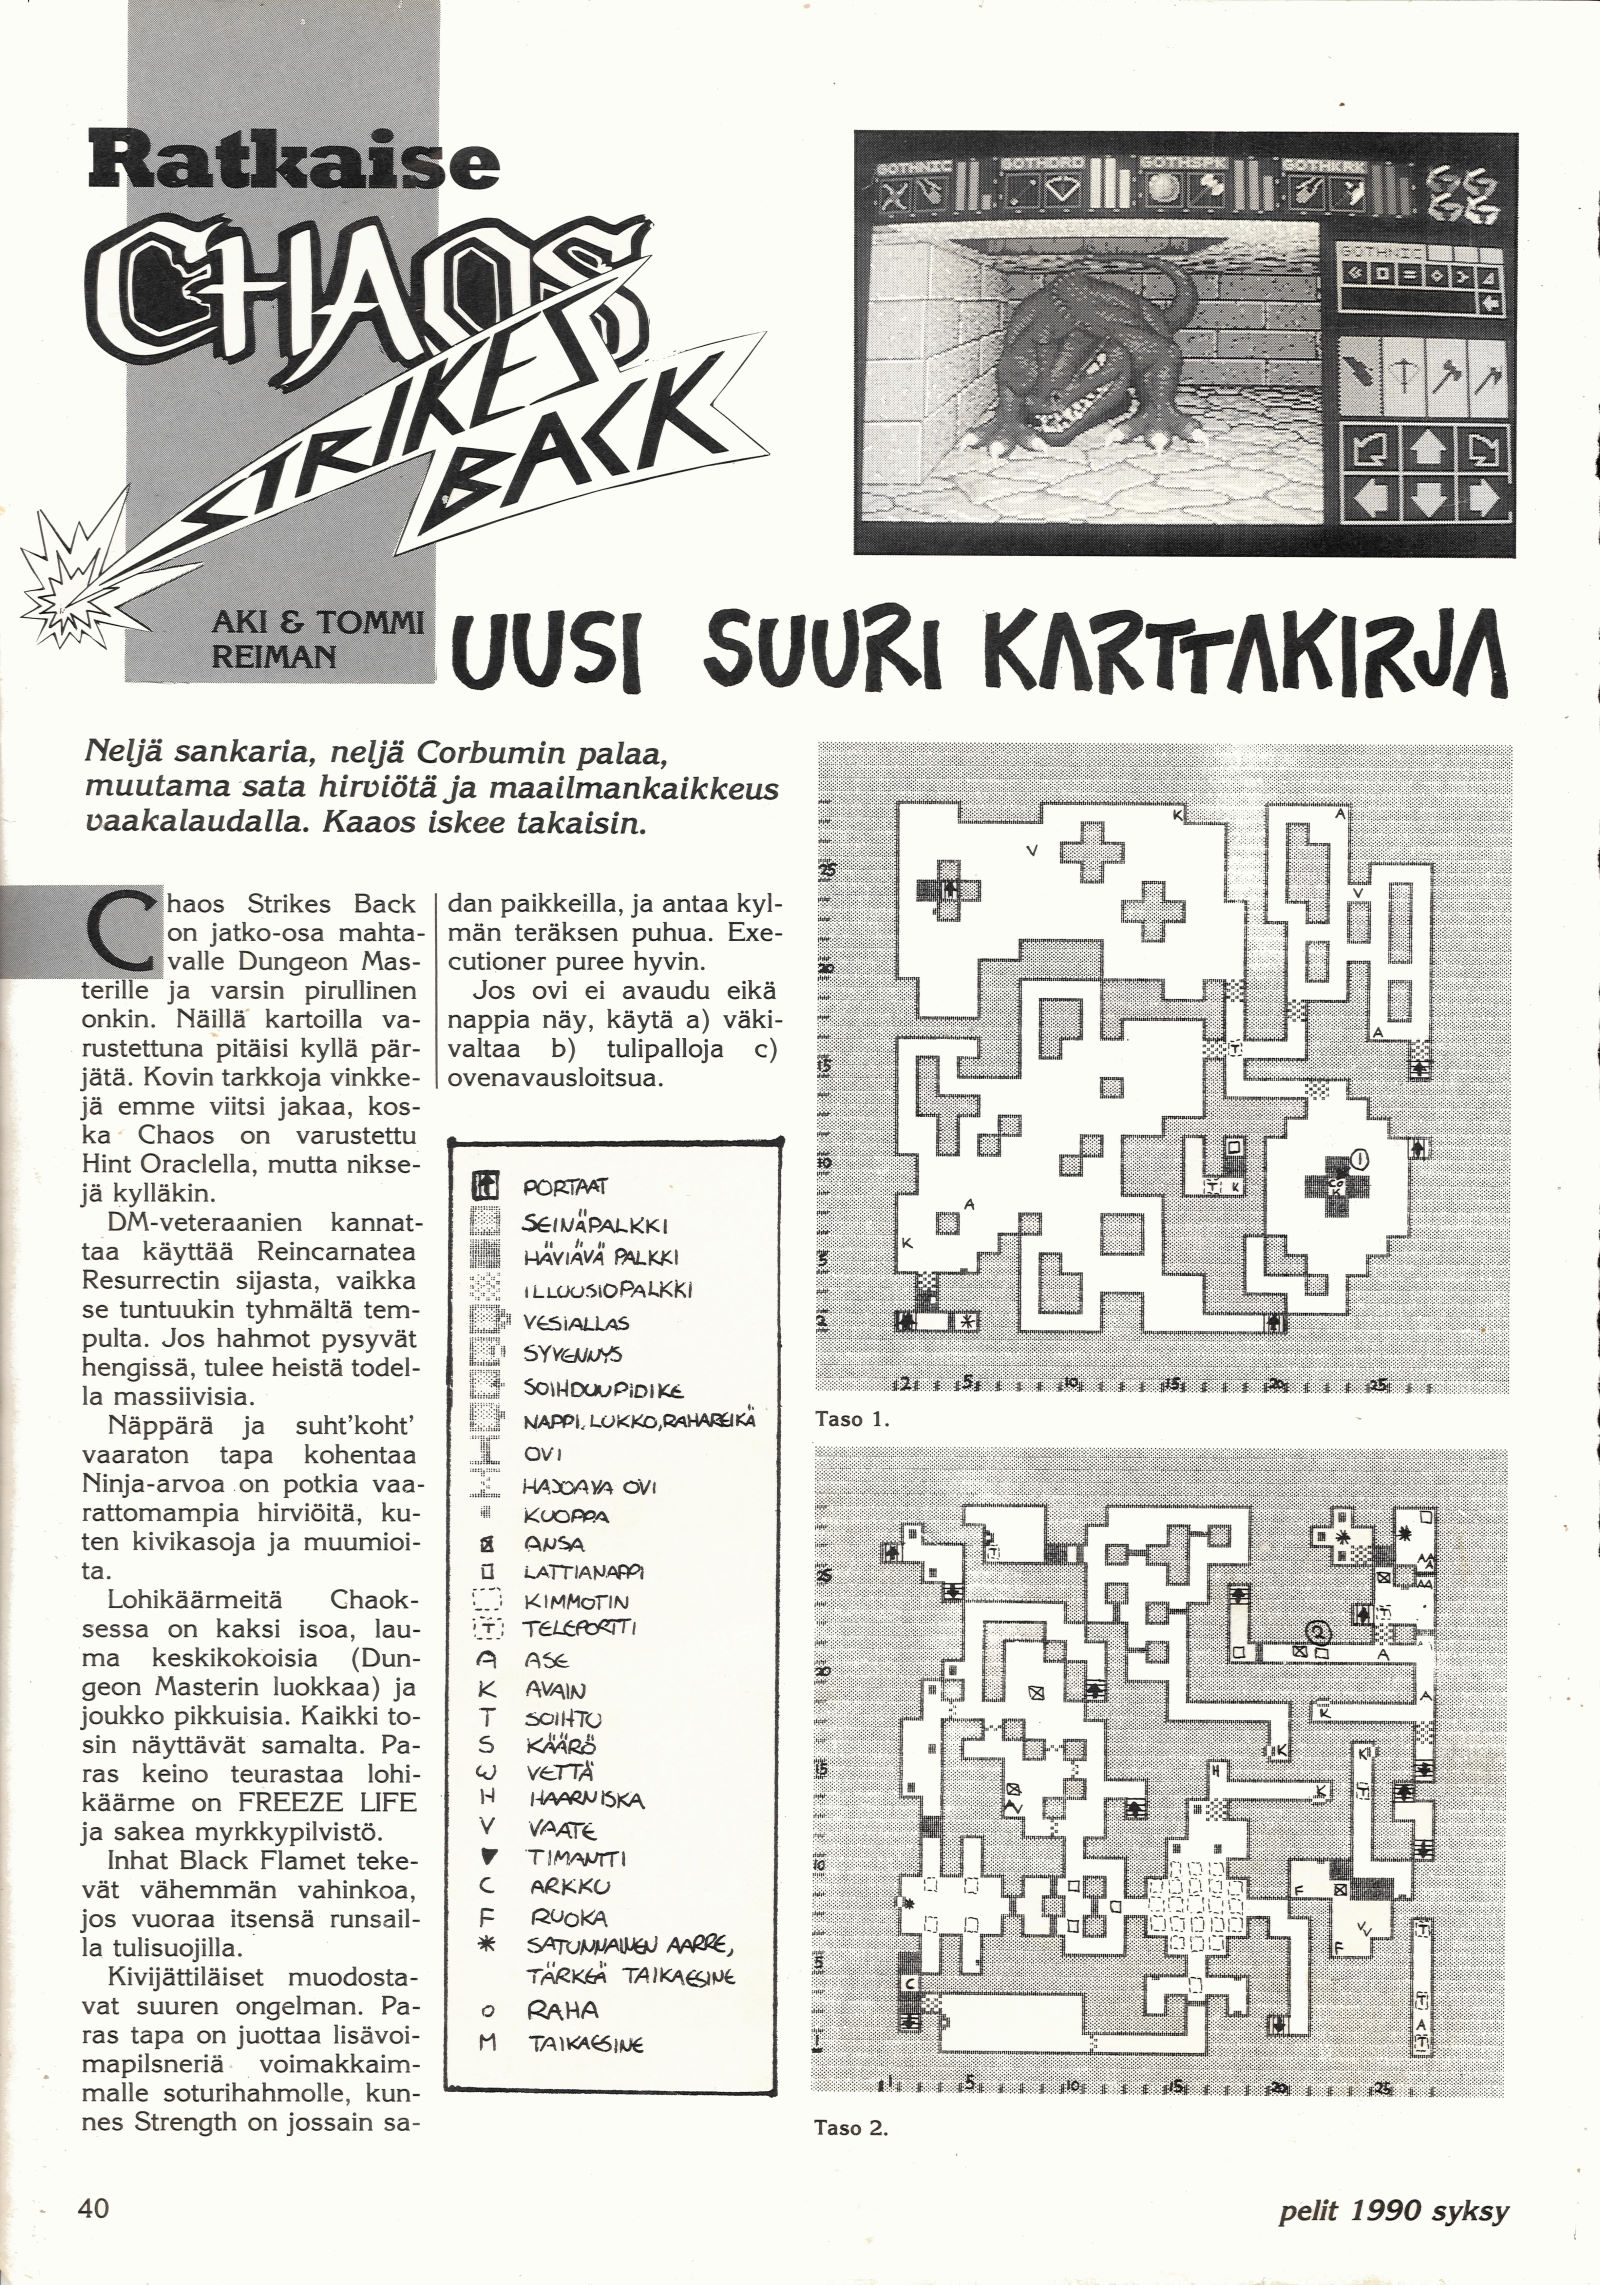 Chaos Strikes Back Hints published in Finnish magazine 'Pelit', Issue #6 Autumn 1990, Page 40